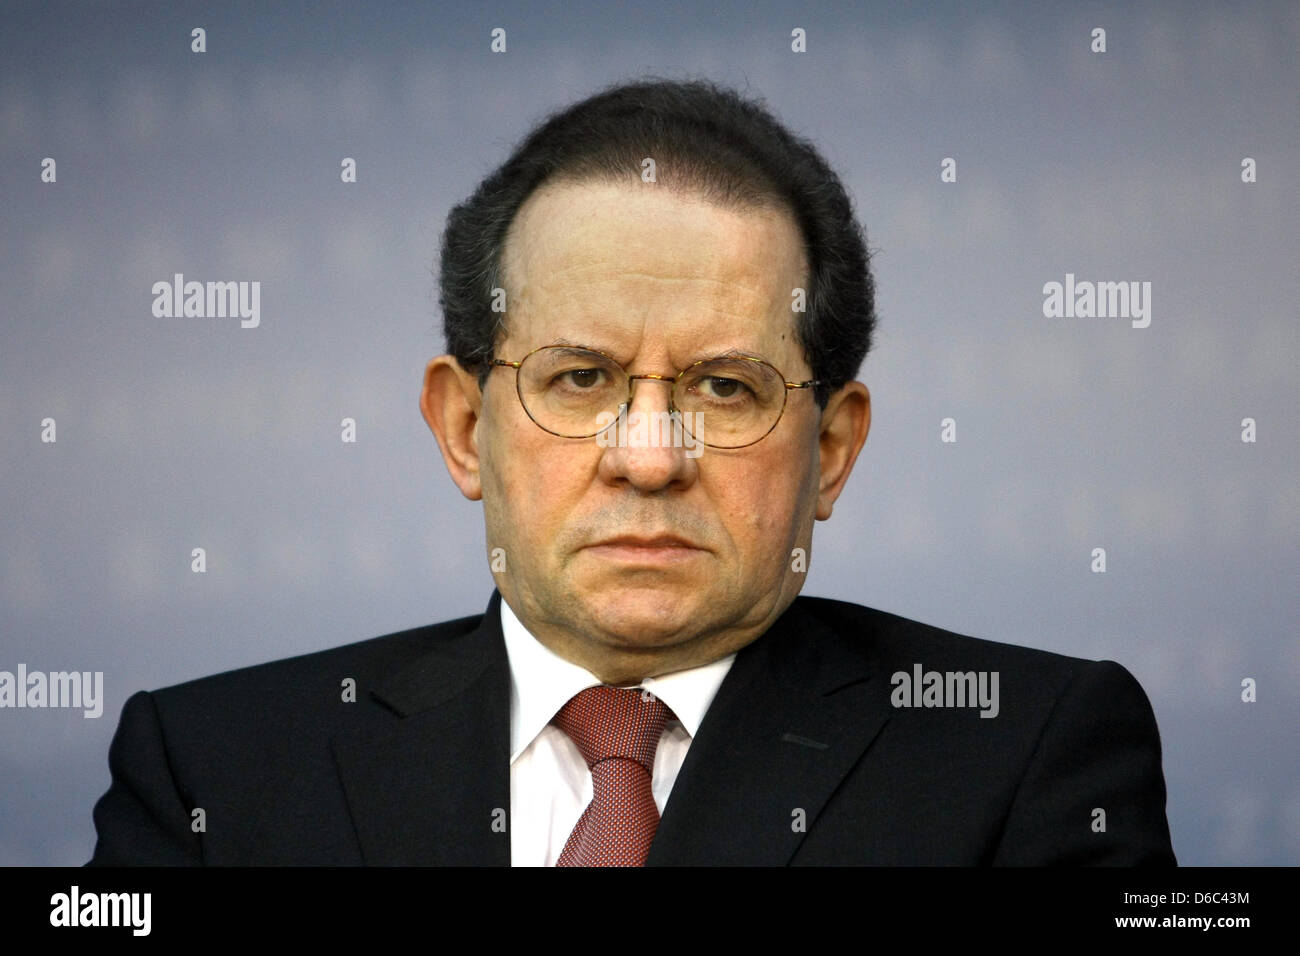 Vice President of the European Central Bank (ECB) Vitor Constancio is pictured during a press conference at the - Stock Image